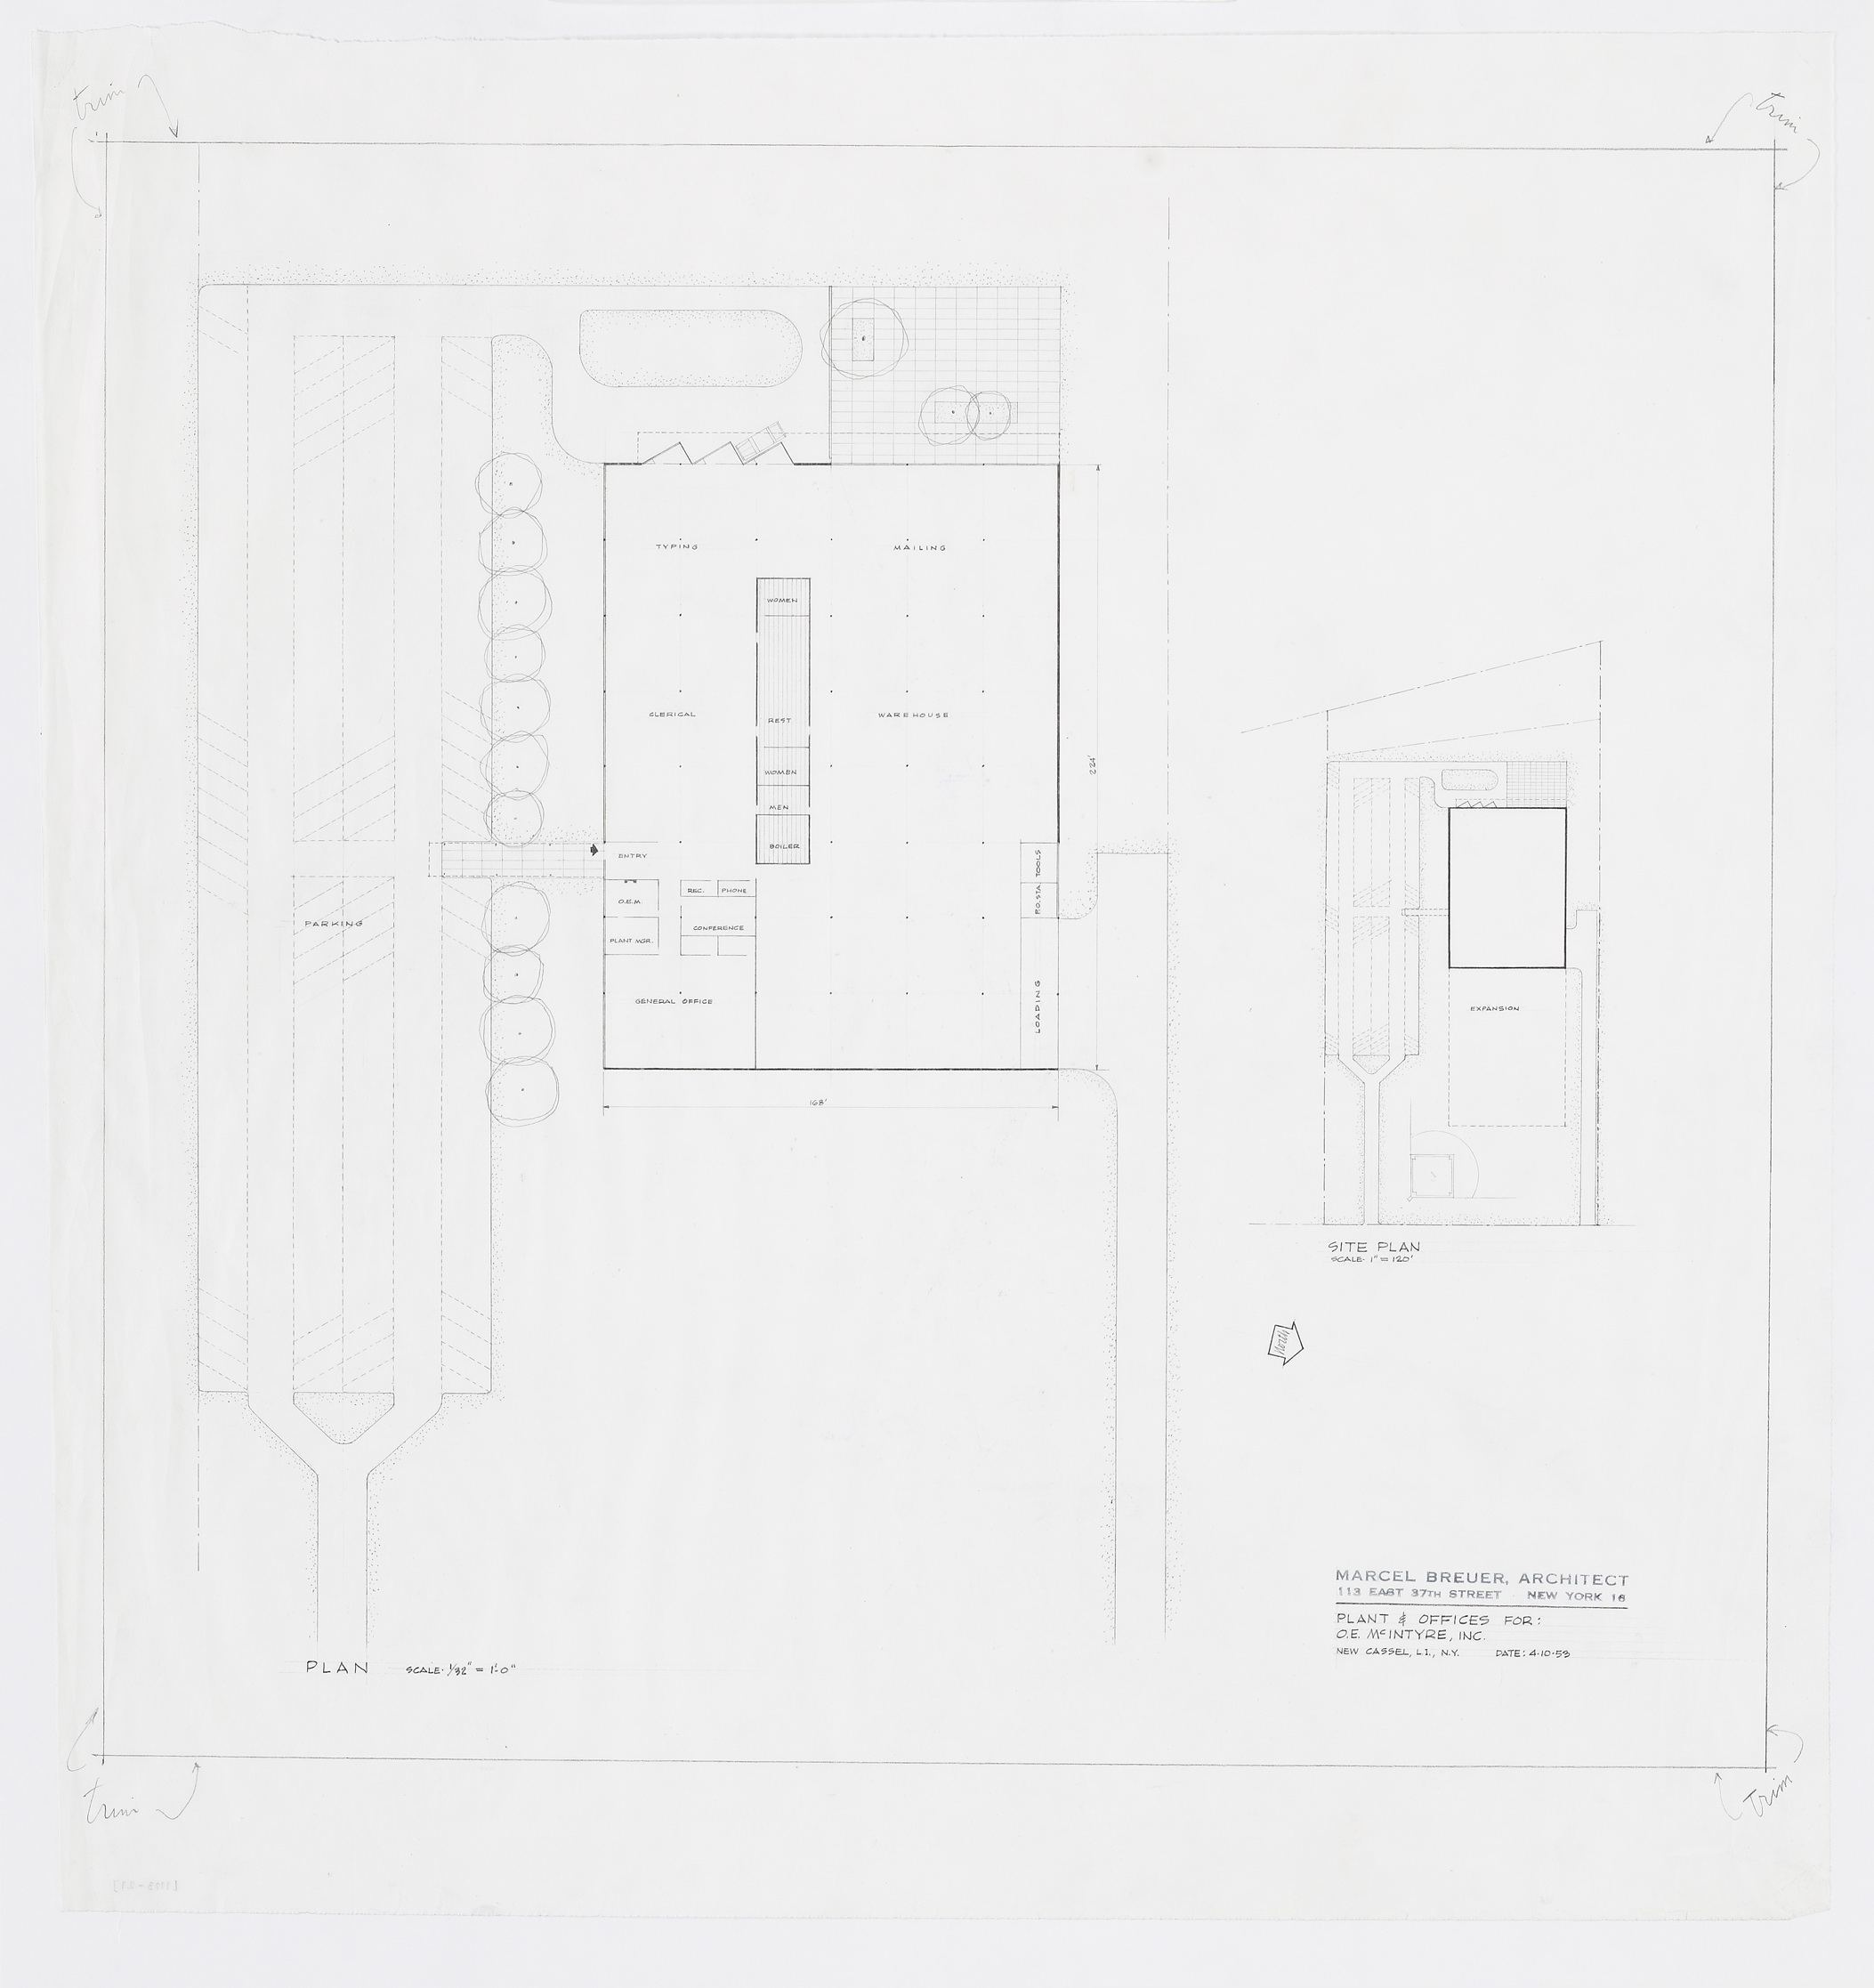 Click to select: Plan and Site Plan